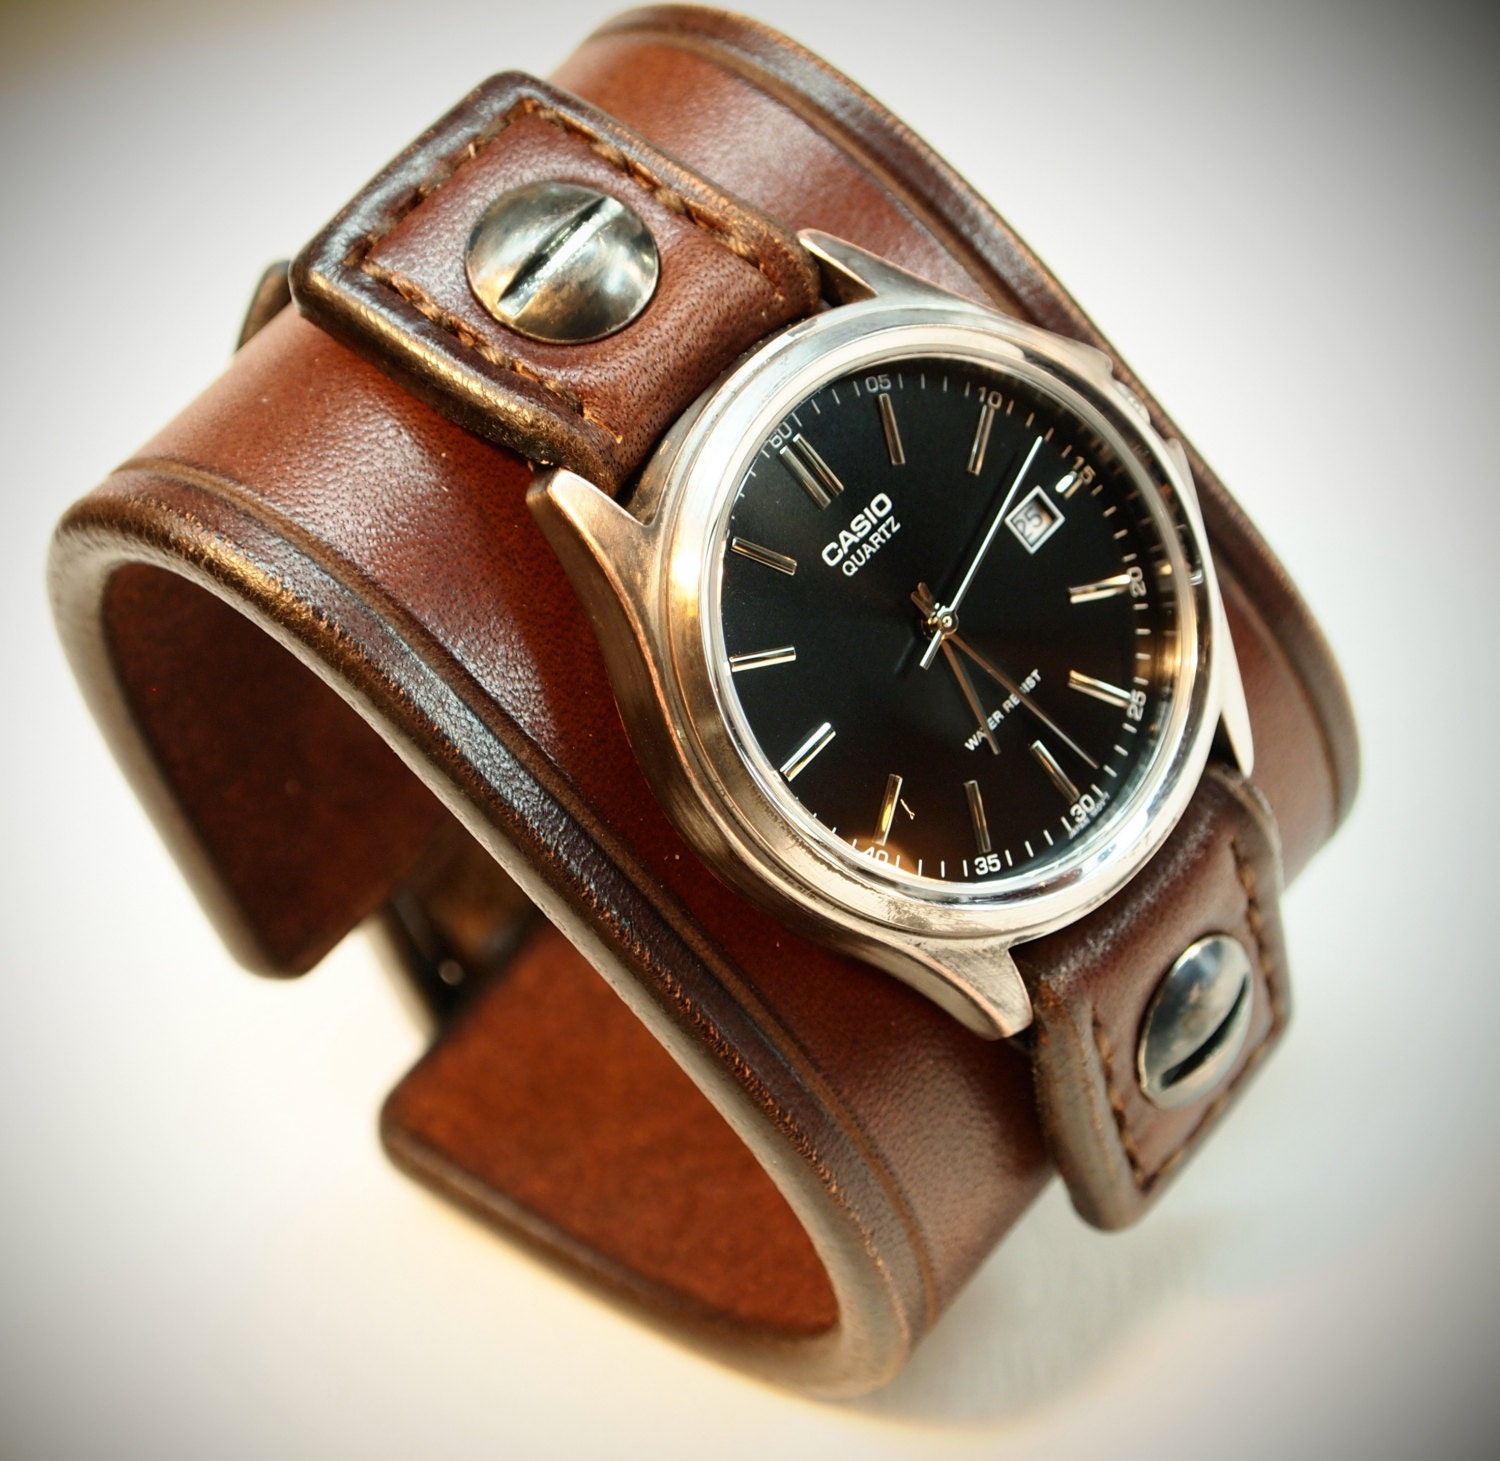 Leather Cuff Watch Casio Vintage Brown Bridle Leather